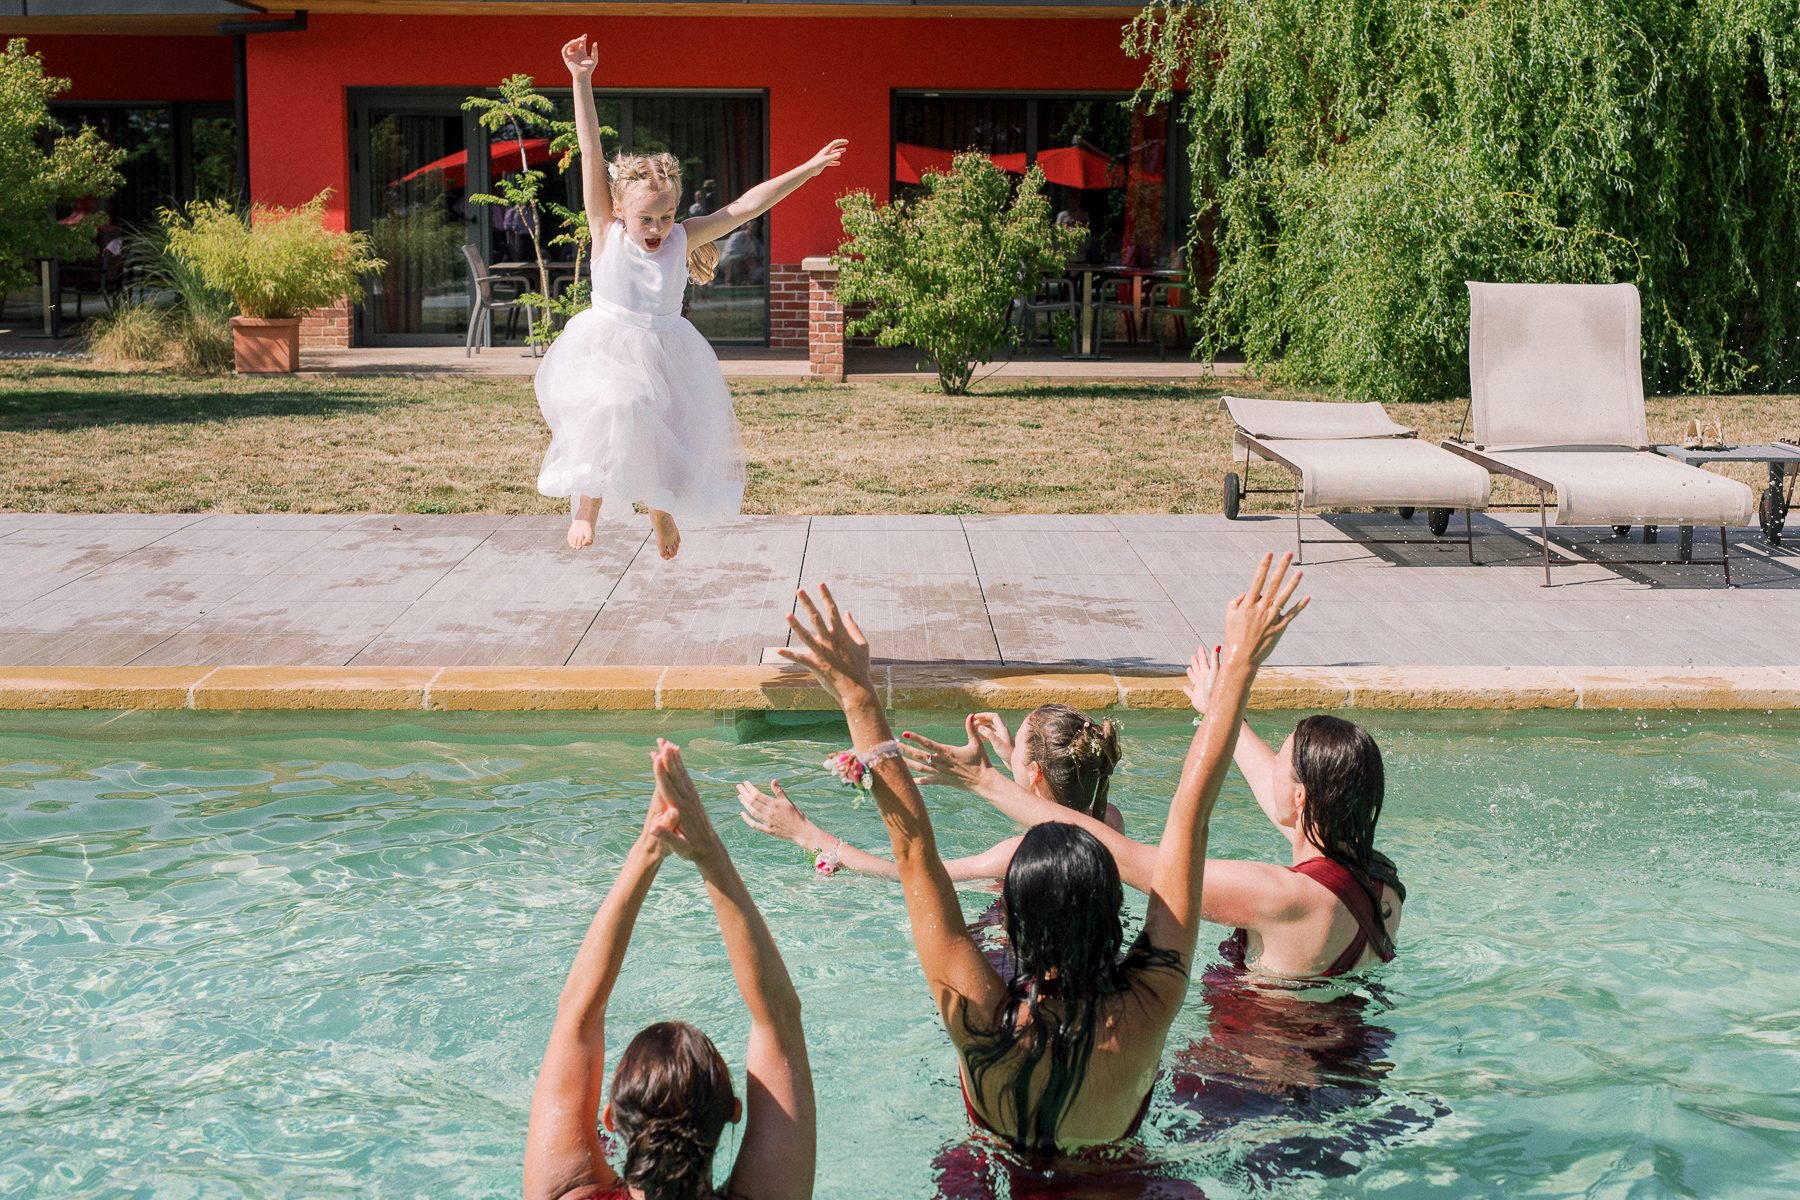 Kids at the wedding having fun jumping into the pool. Photo of flowergirl in white dress.